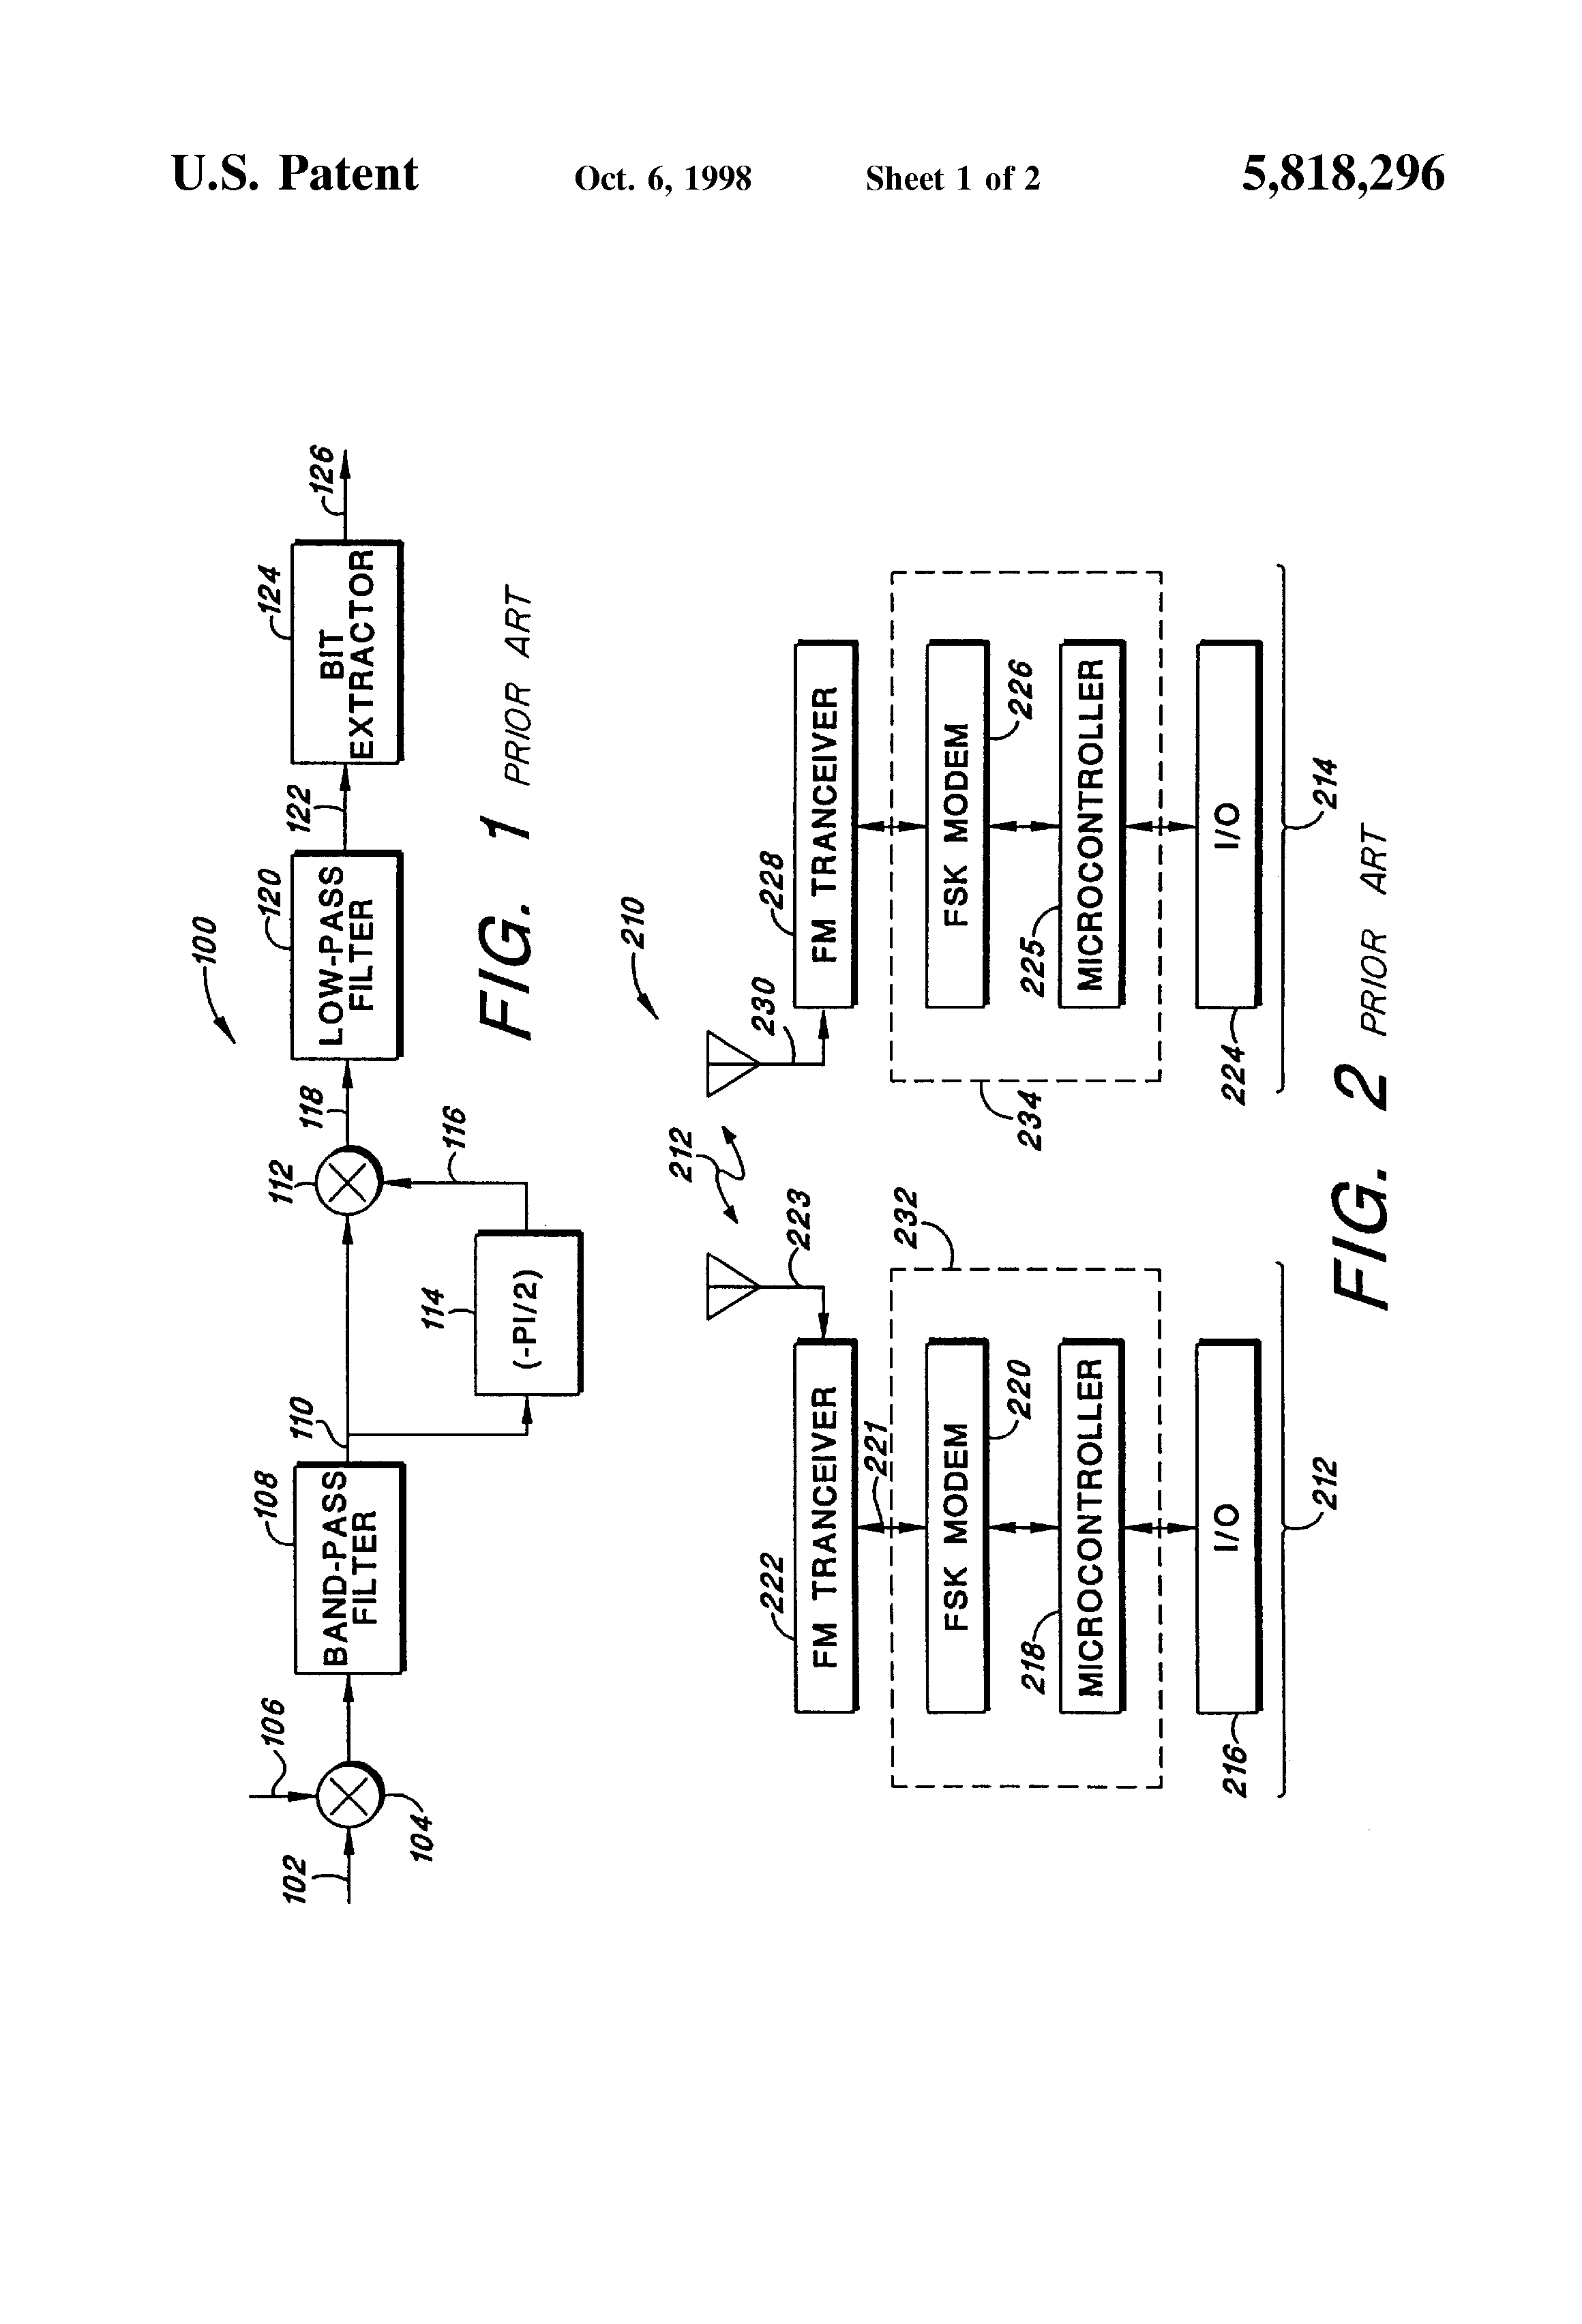 Us 5818296 A Fsk Demodulator Using Goertzels Discrete Fourier Previous Next